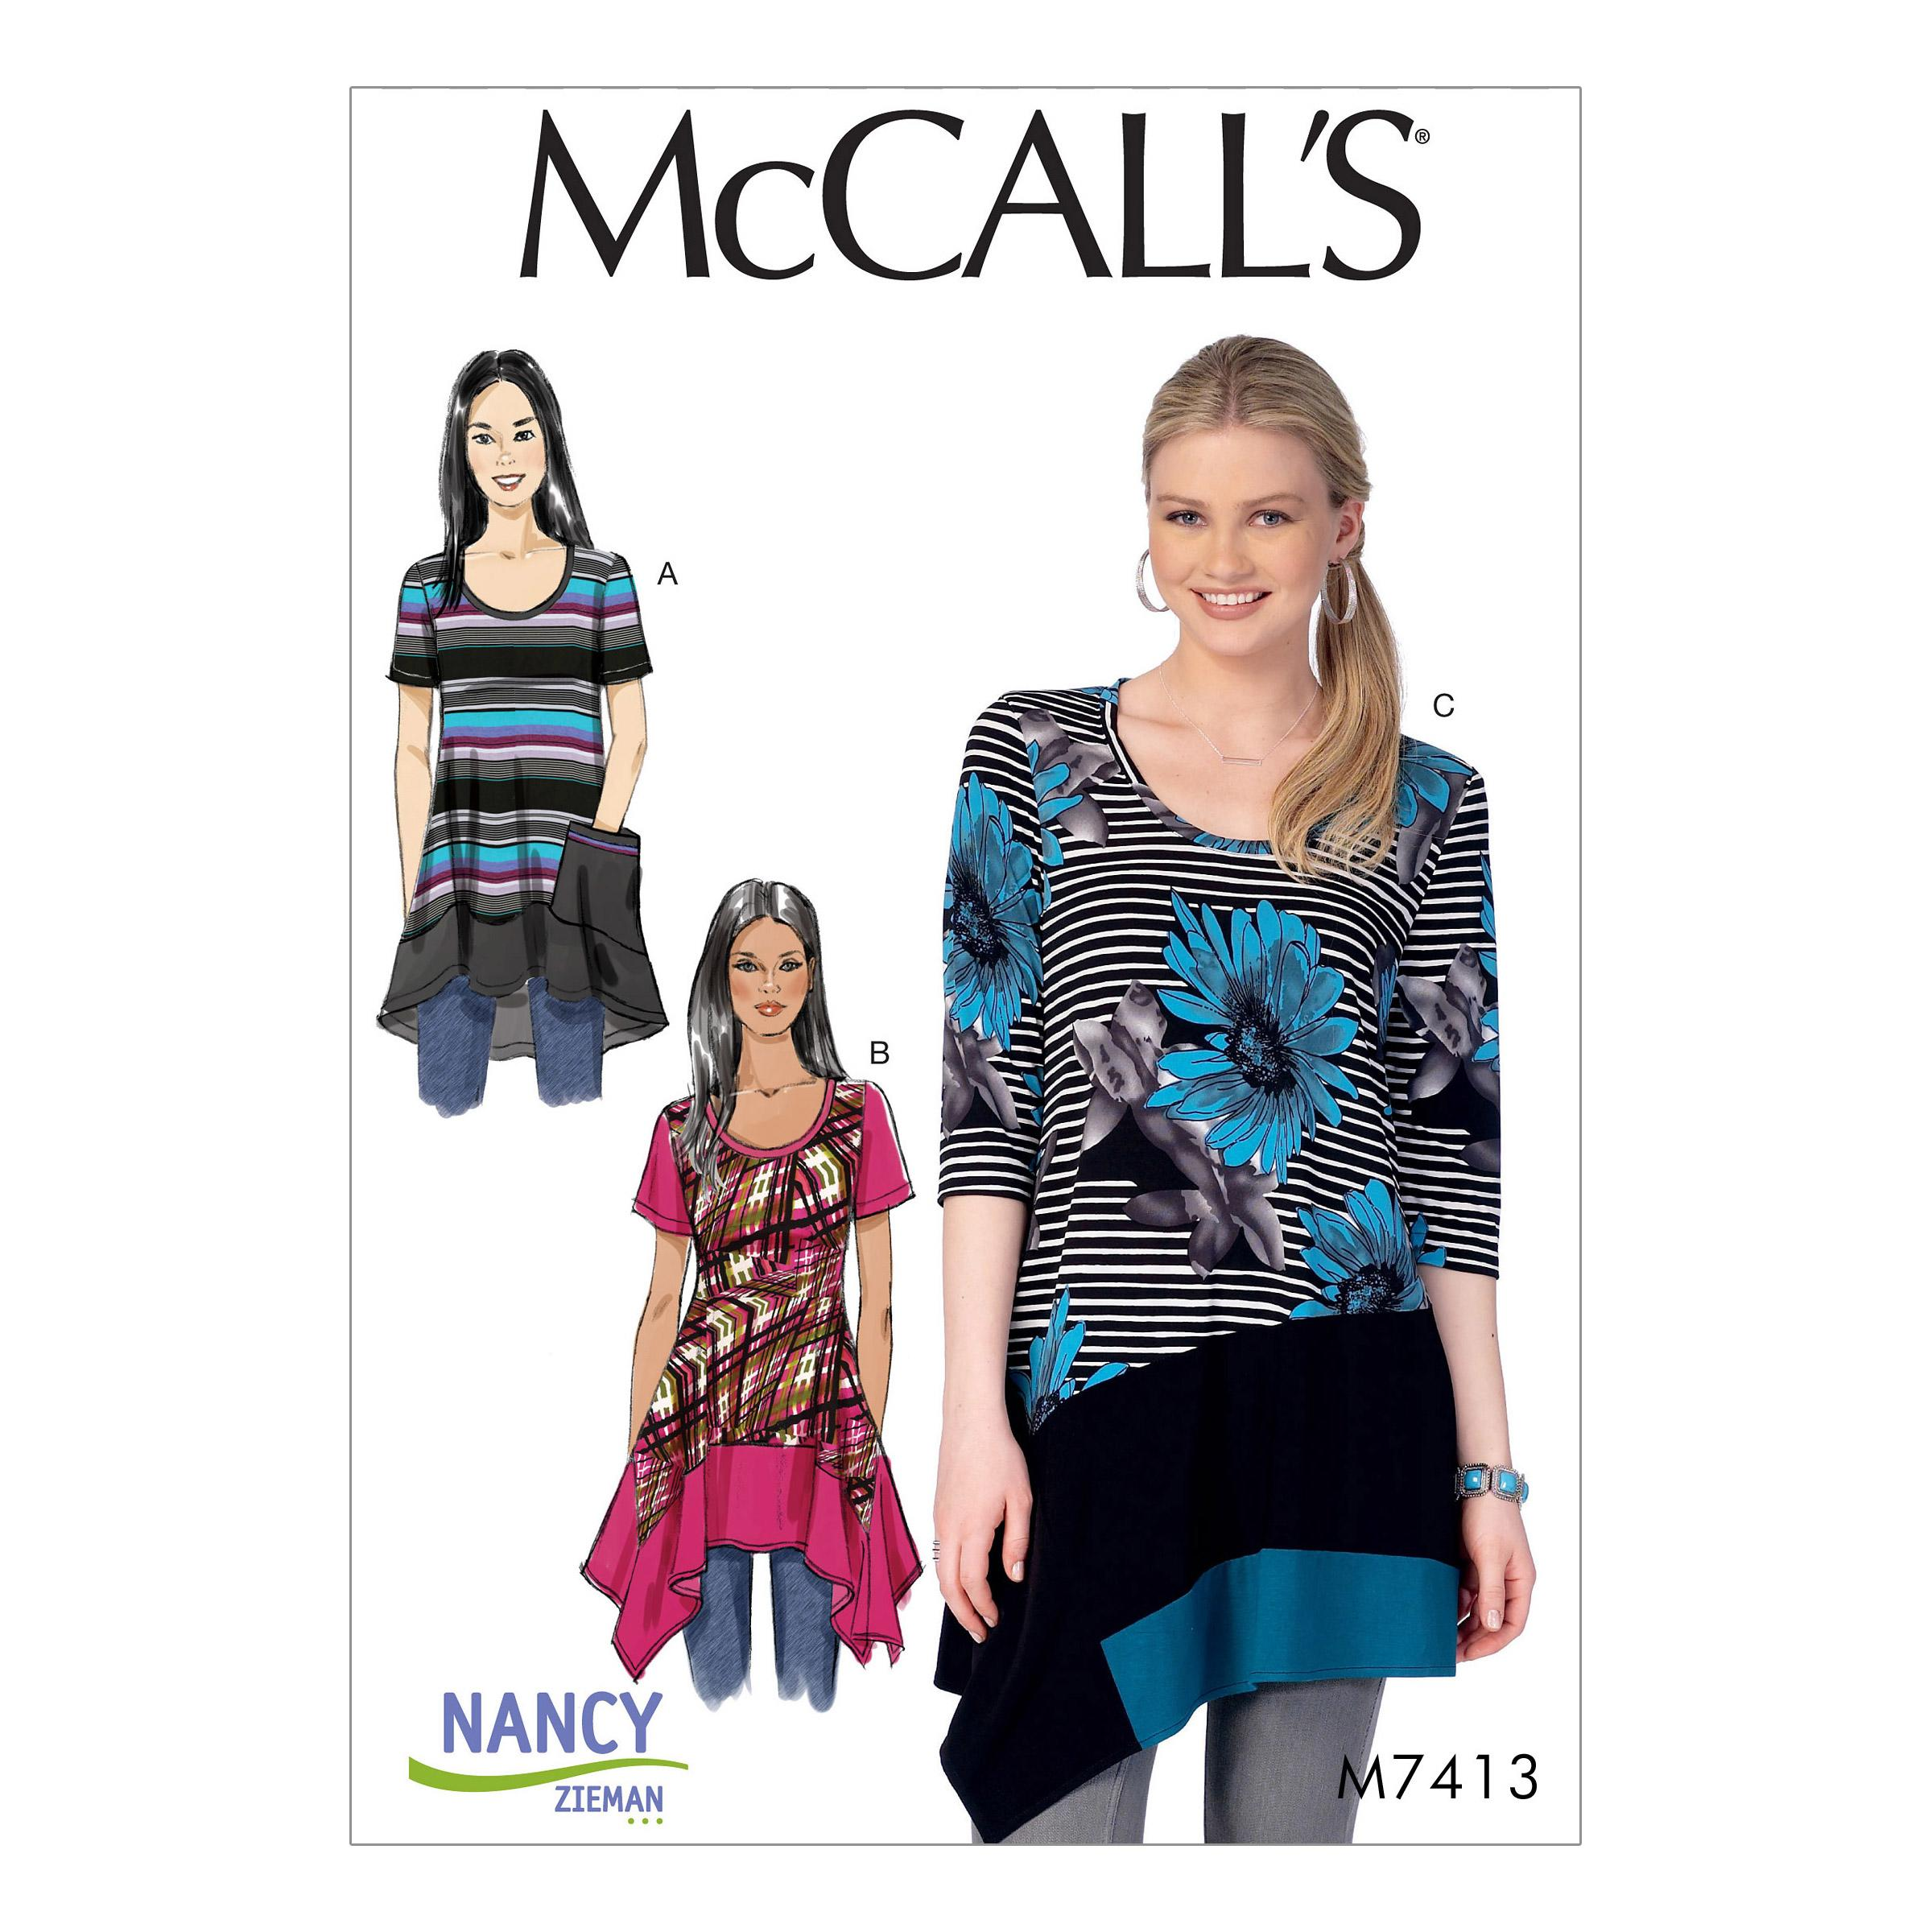 McCalls M7413 Misses Tops, Plus Sizes